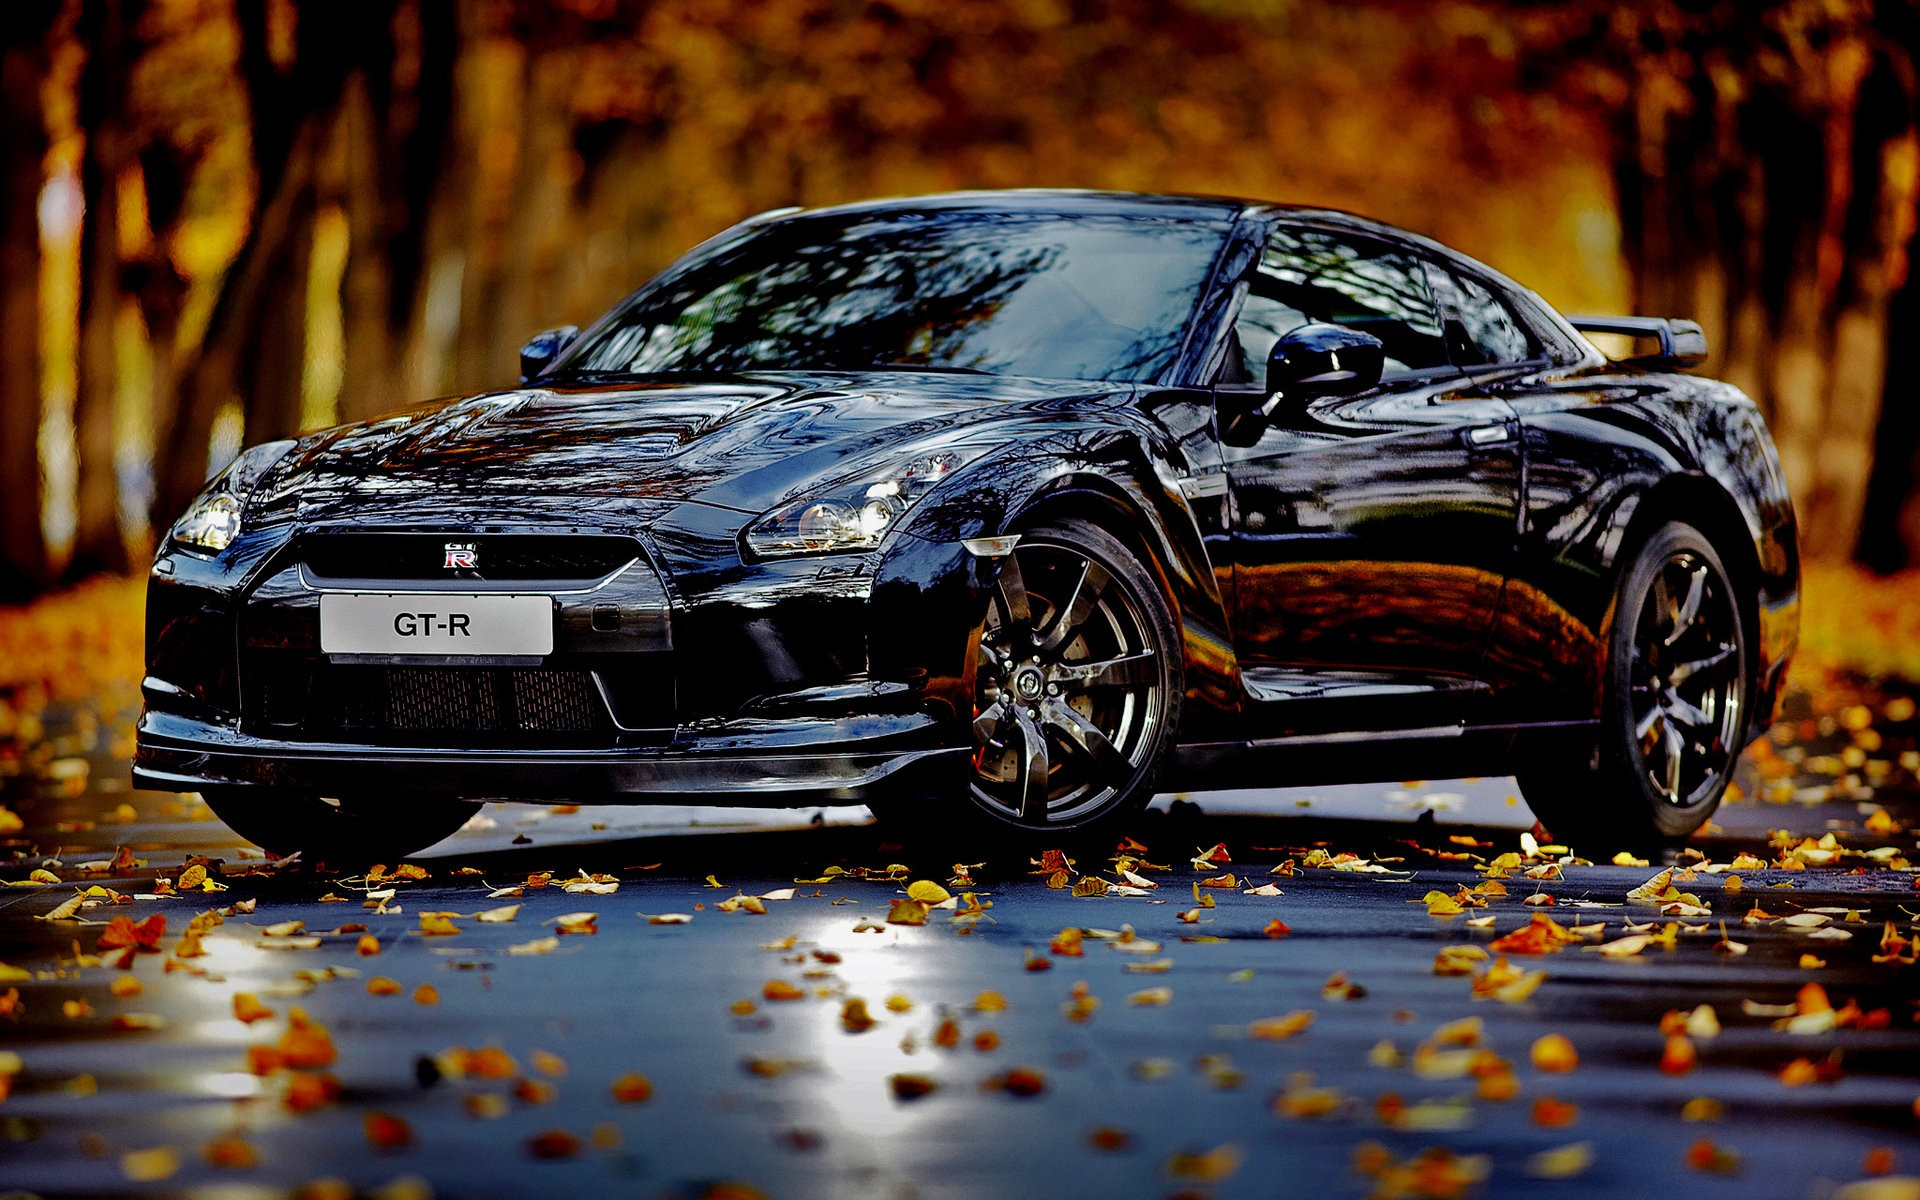 Humphrey 13 Images Nissan Gt R Wallpapers Hd Wallpaper And